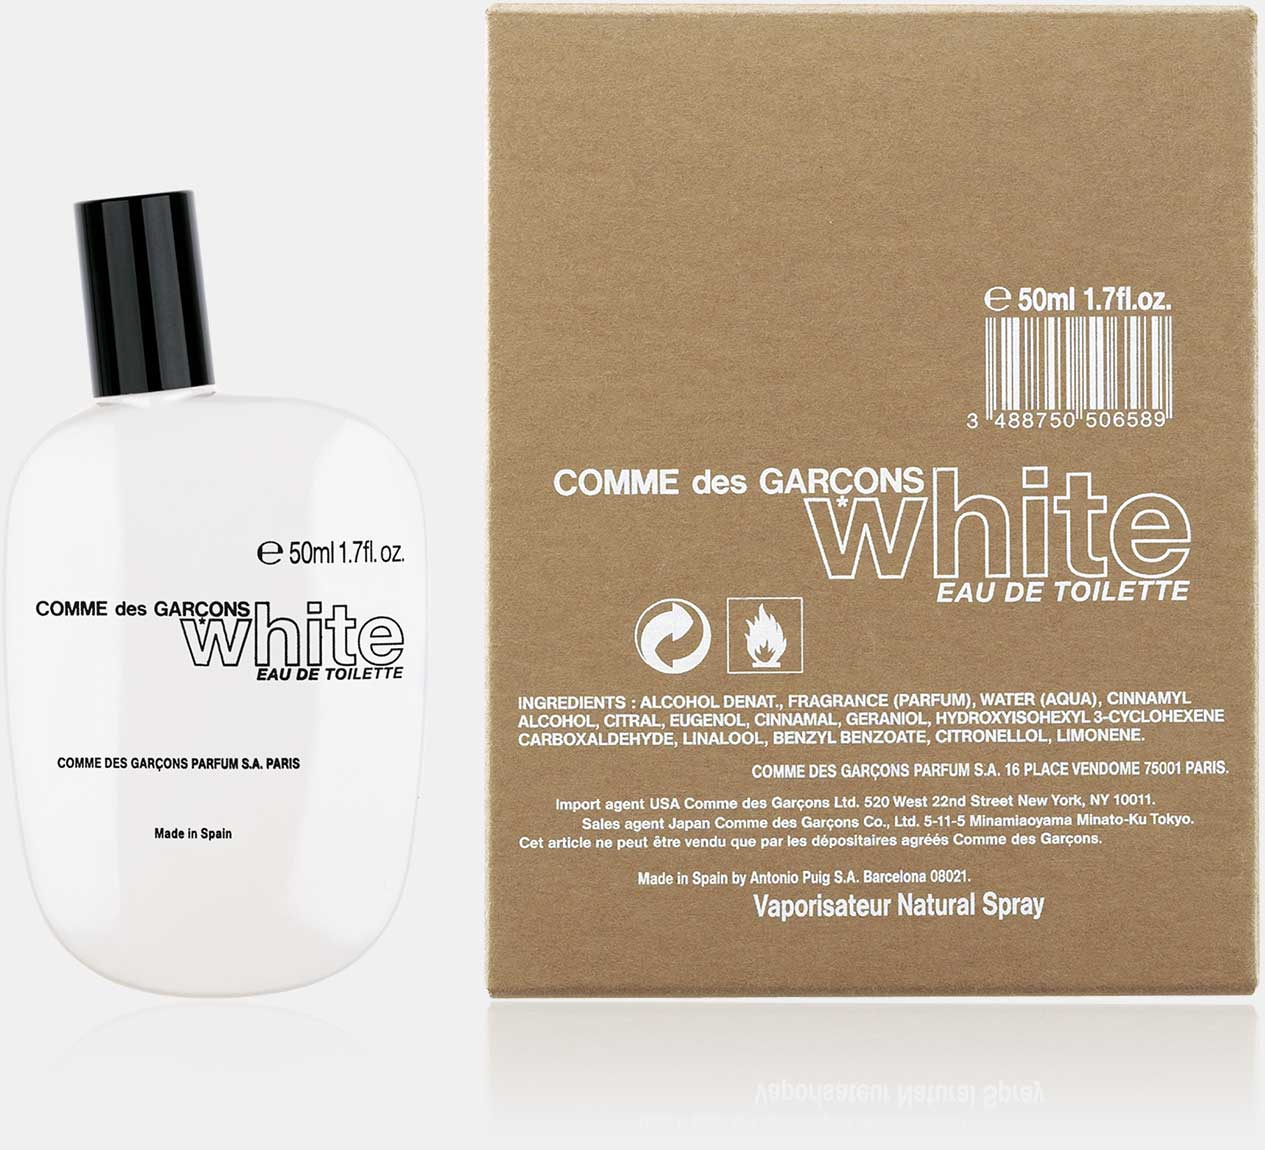 White - Eau de Toilette (50 ml natural spray)